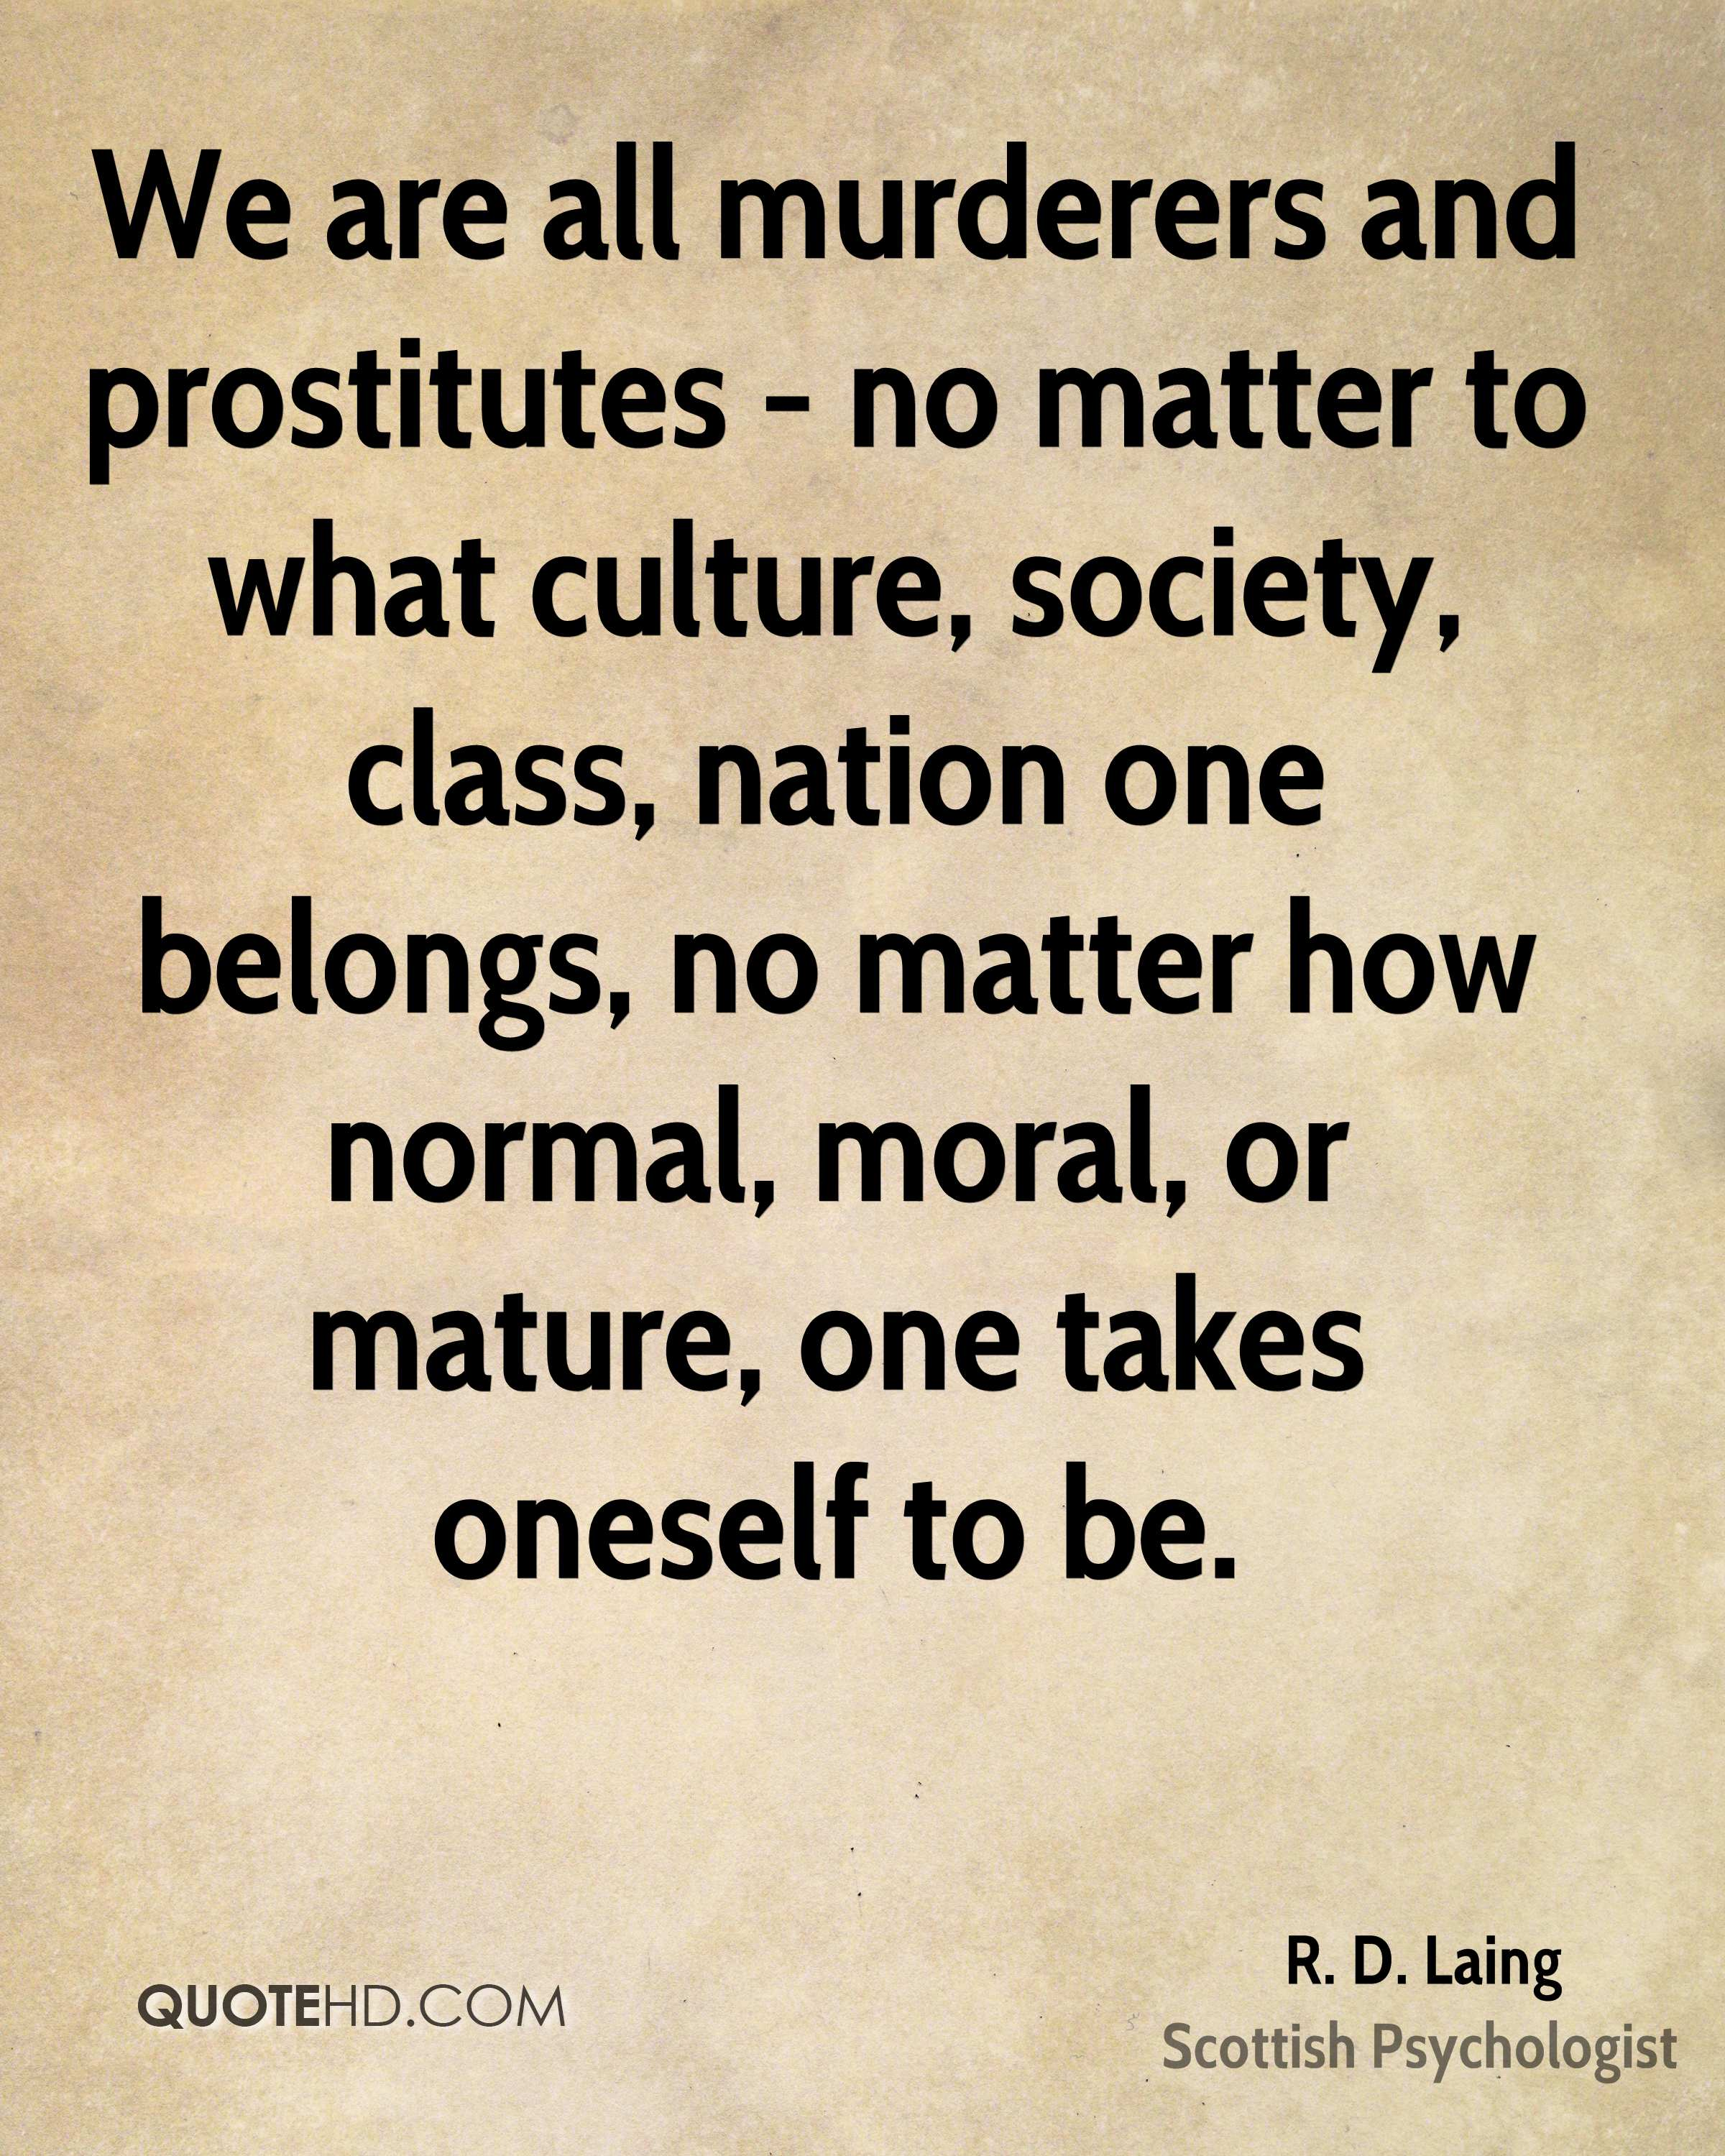 We are all murderers and prostitutes - no matter to what culture, society, class, nation one belongs, no matter how normal, moral, or mature, one takes oneself to be.